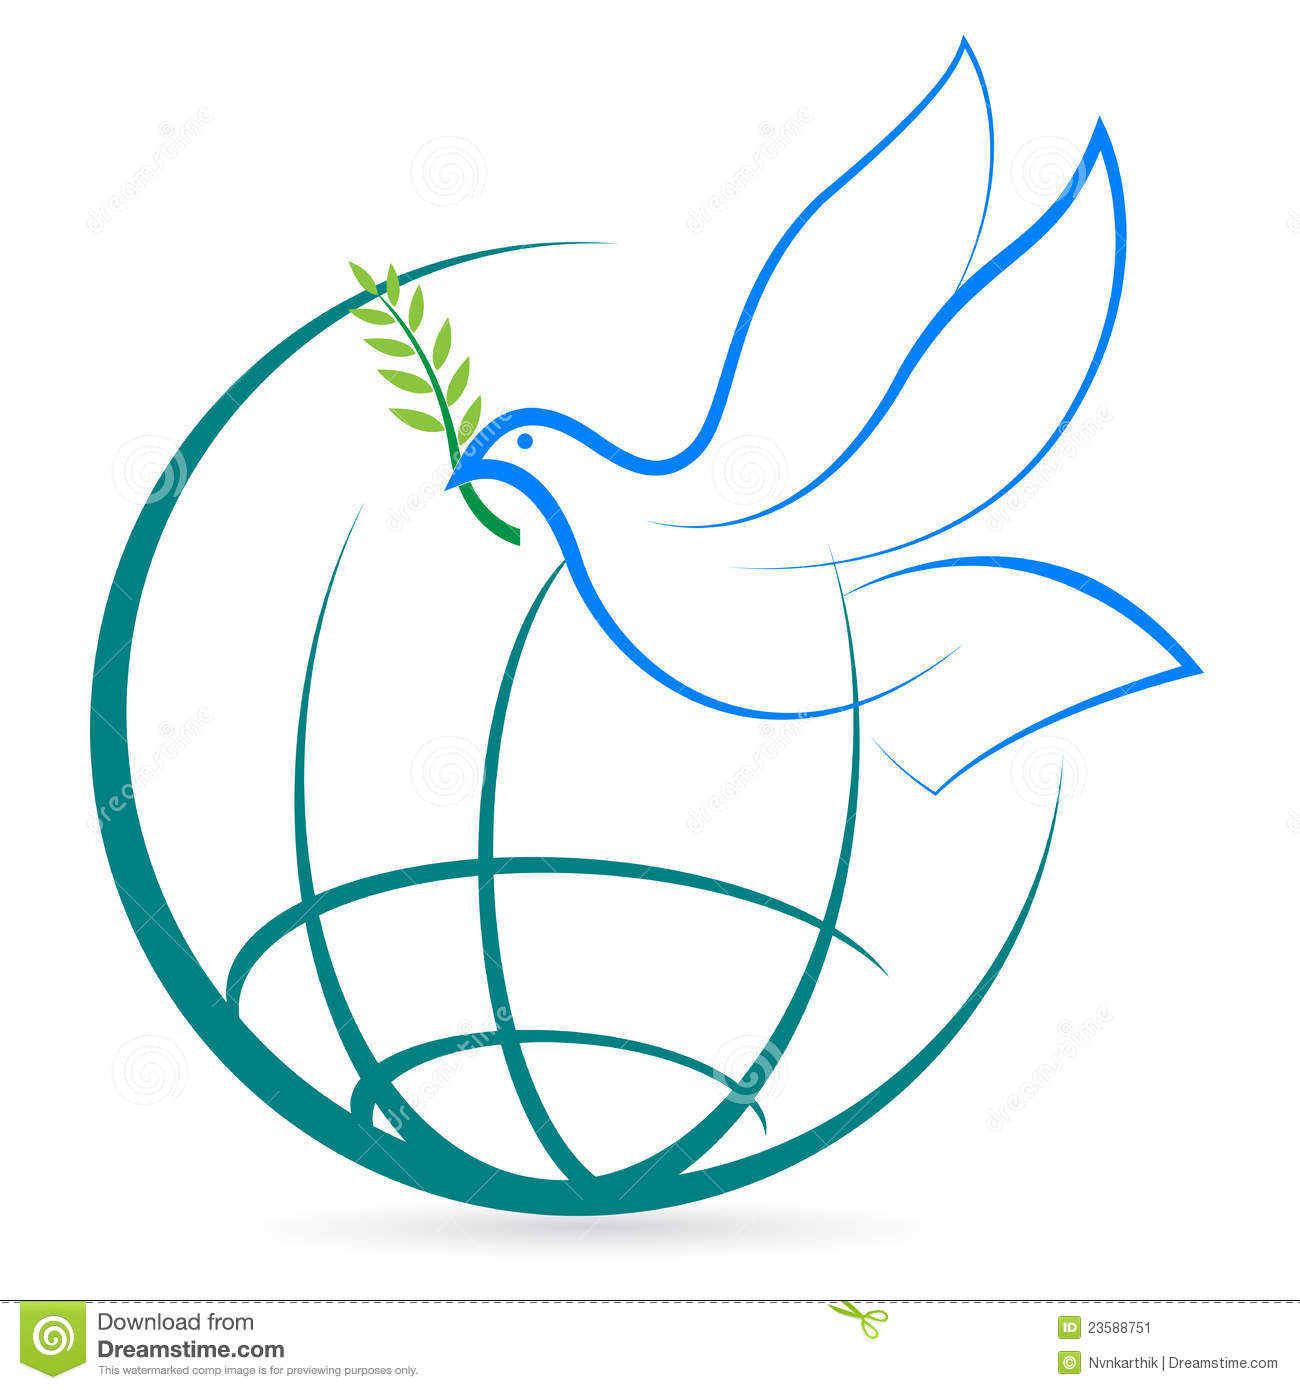 World Peace Dove 3